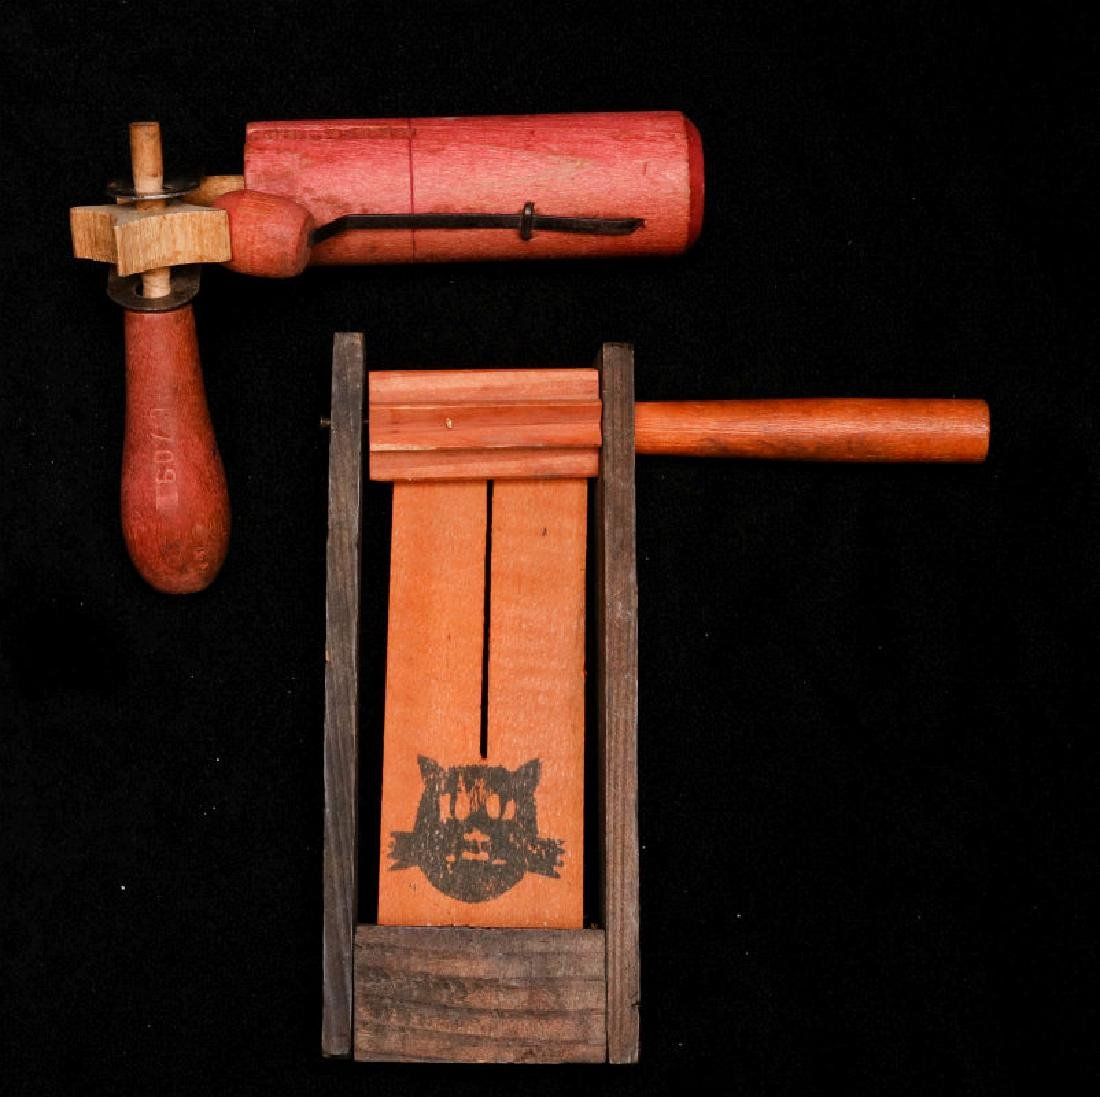 TWO VINTAGE WOODEN RATCHET NOISE MAKERS